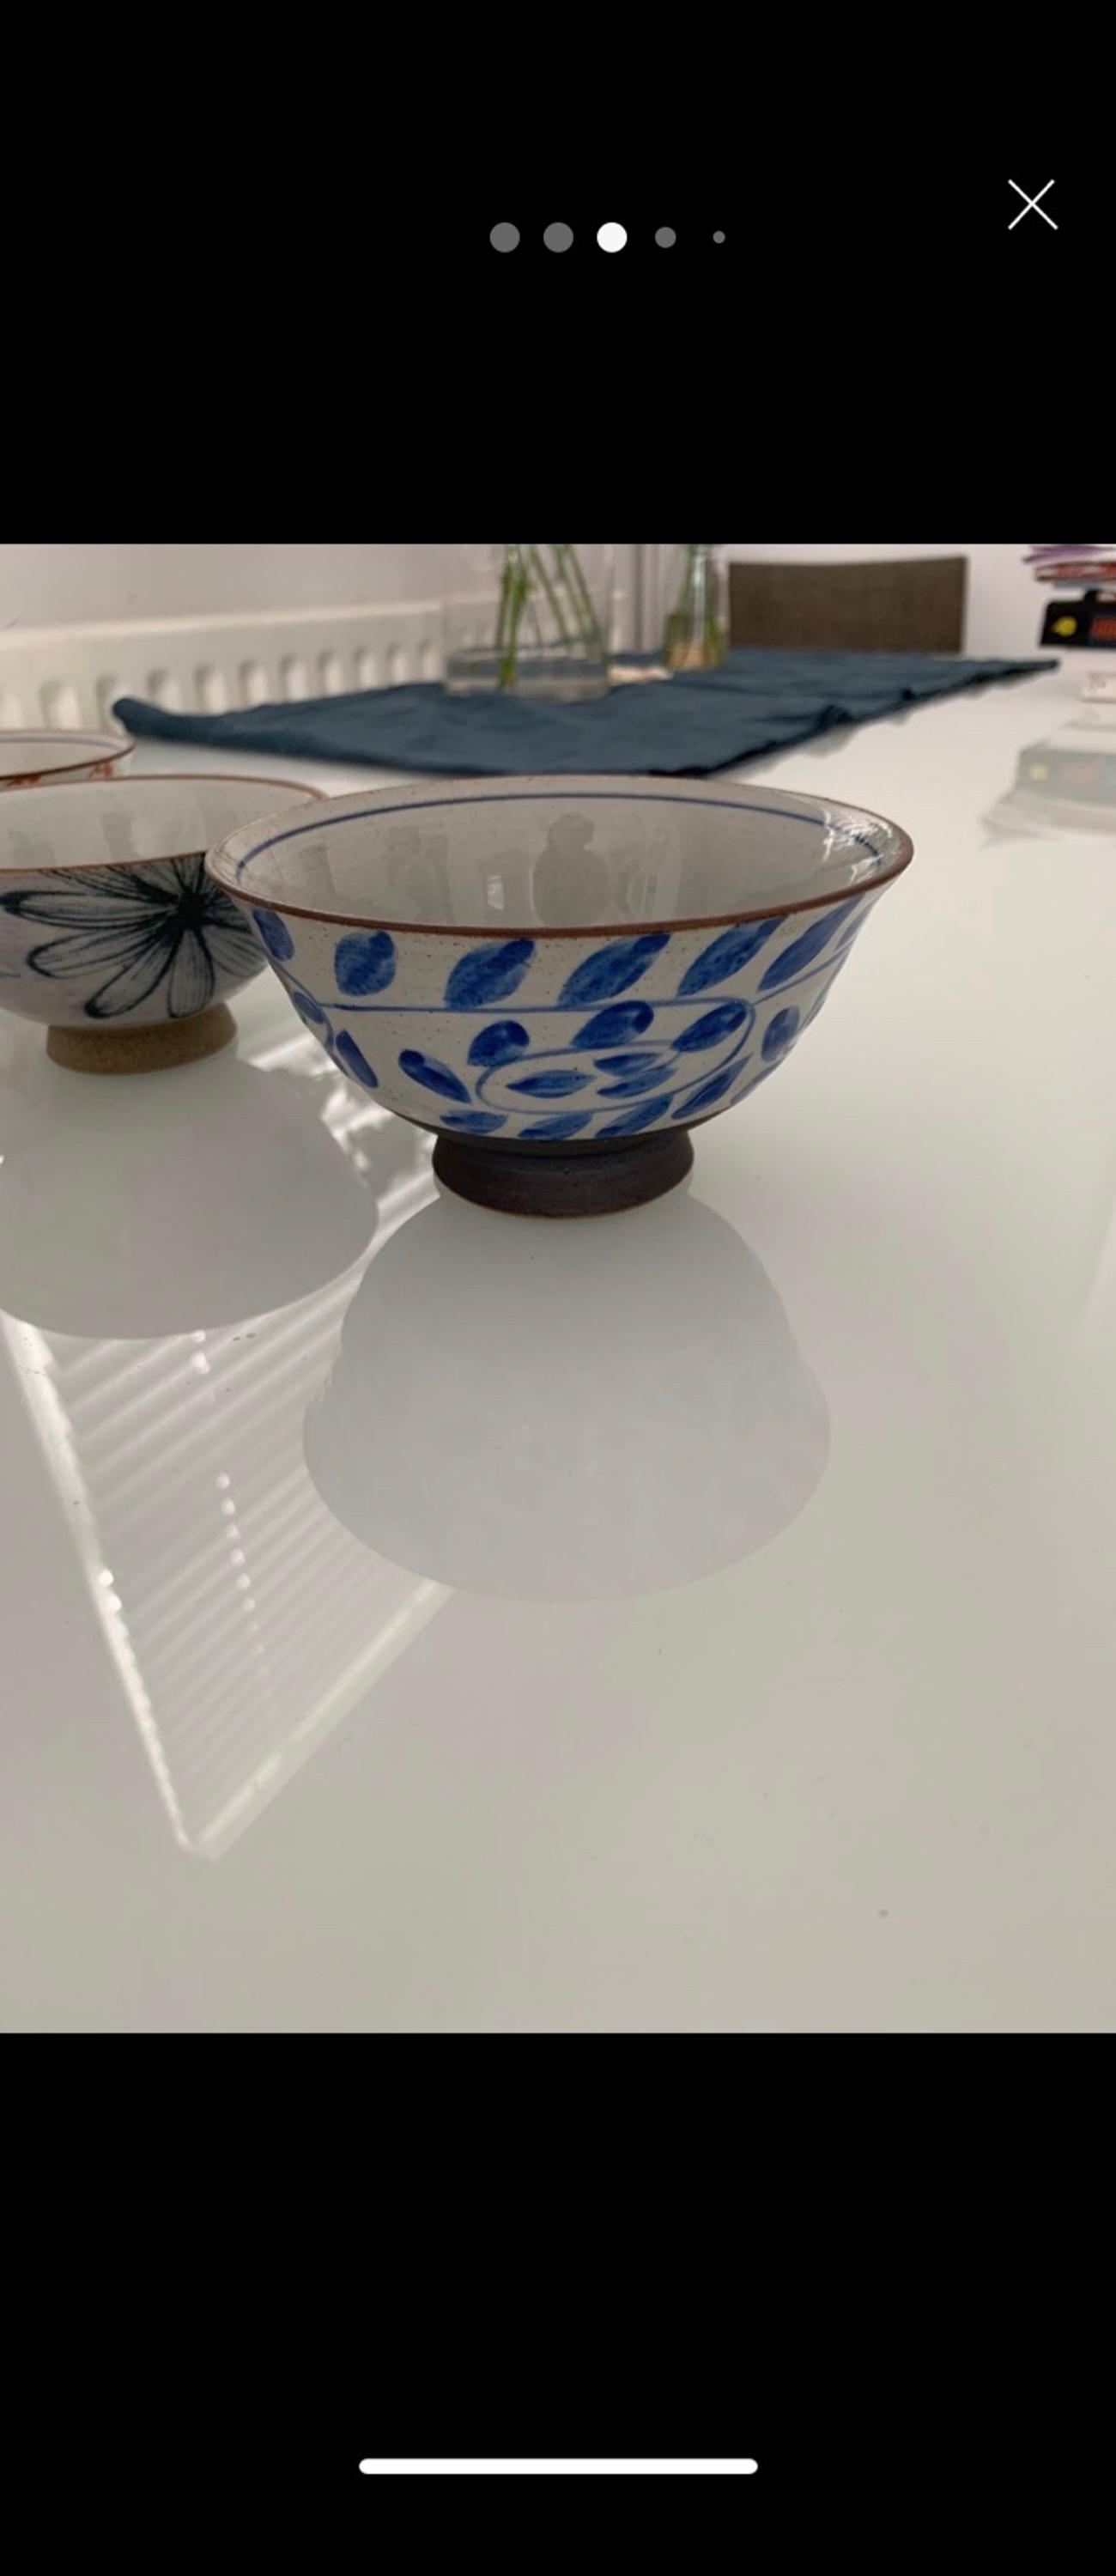 4 bowls from Arita pottery in Japan. Beautiful painted. Good size for soup, rice, cereal.